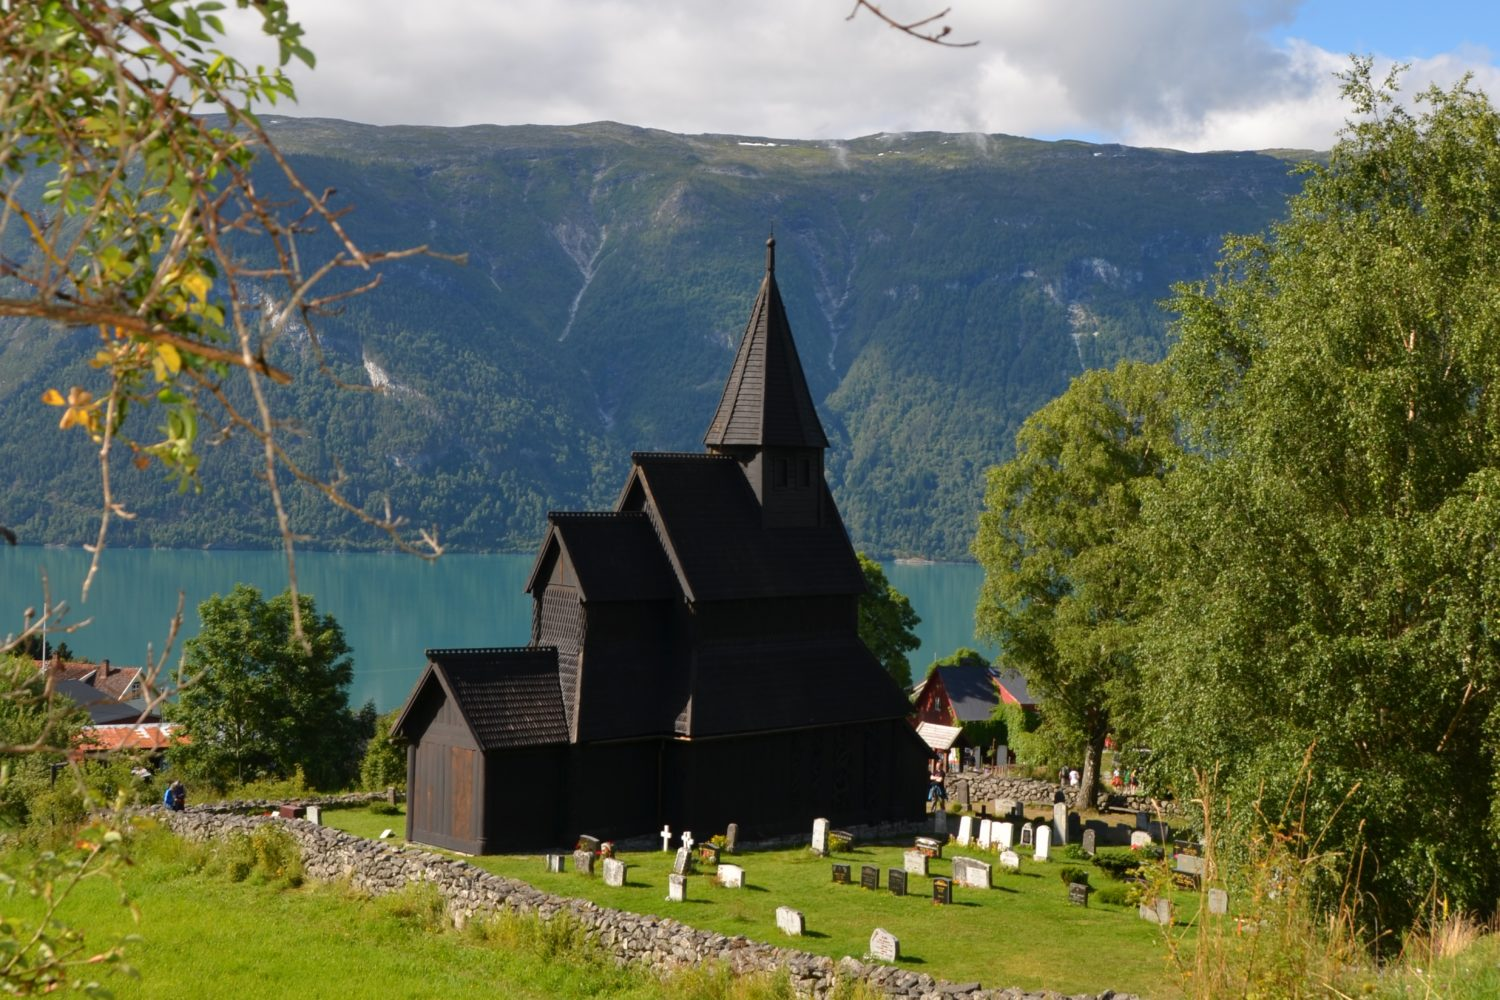 Self guided hiking tour in the Fjords of Norway